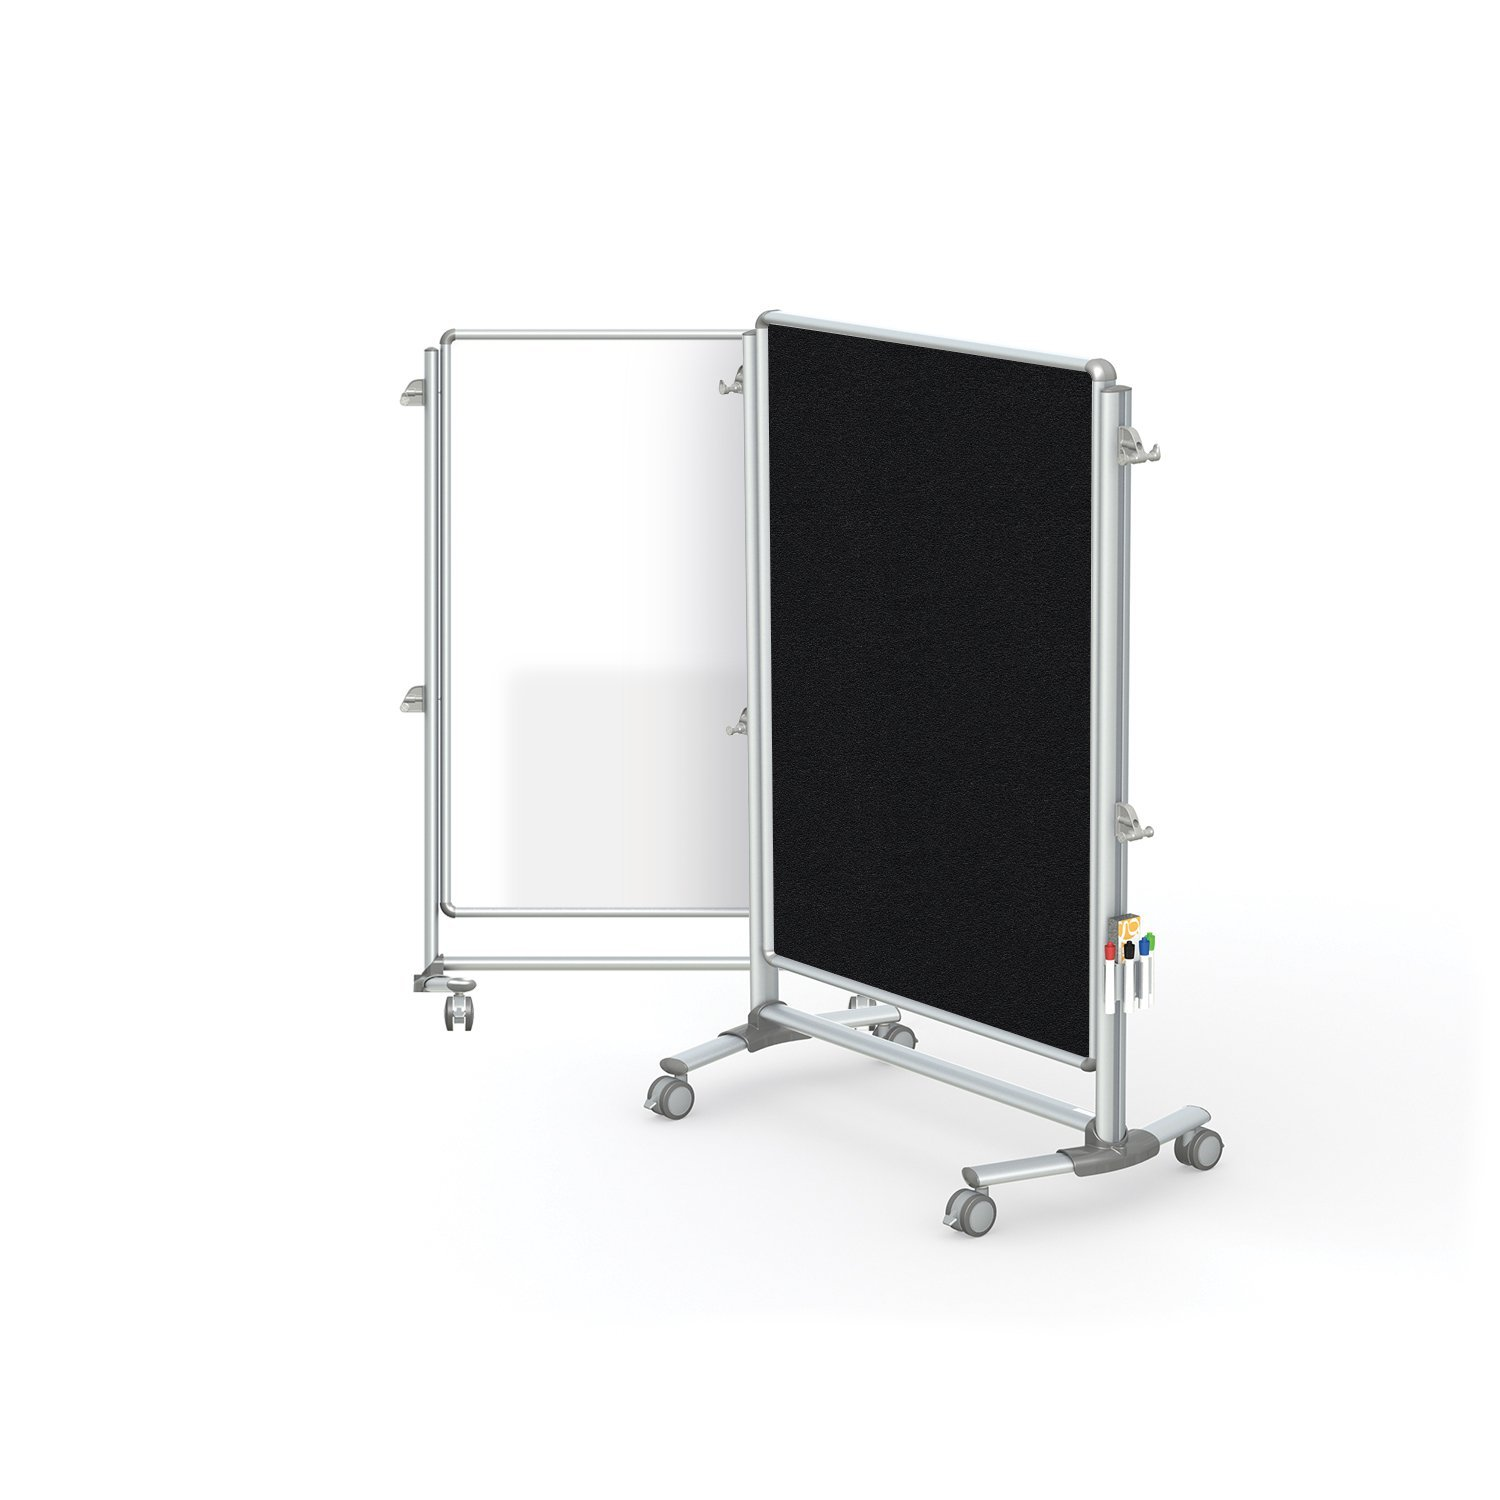 "Ghent 57-3/8"" x 40-3/8"" Nexus Jr. Partition, Magnetic Whiteboard/Bulletin Board, Double-Sided (NEX223MFP-95)"